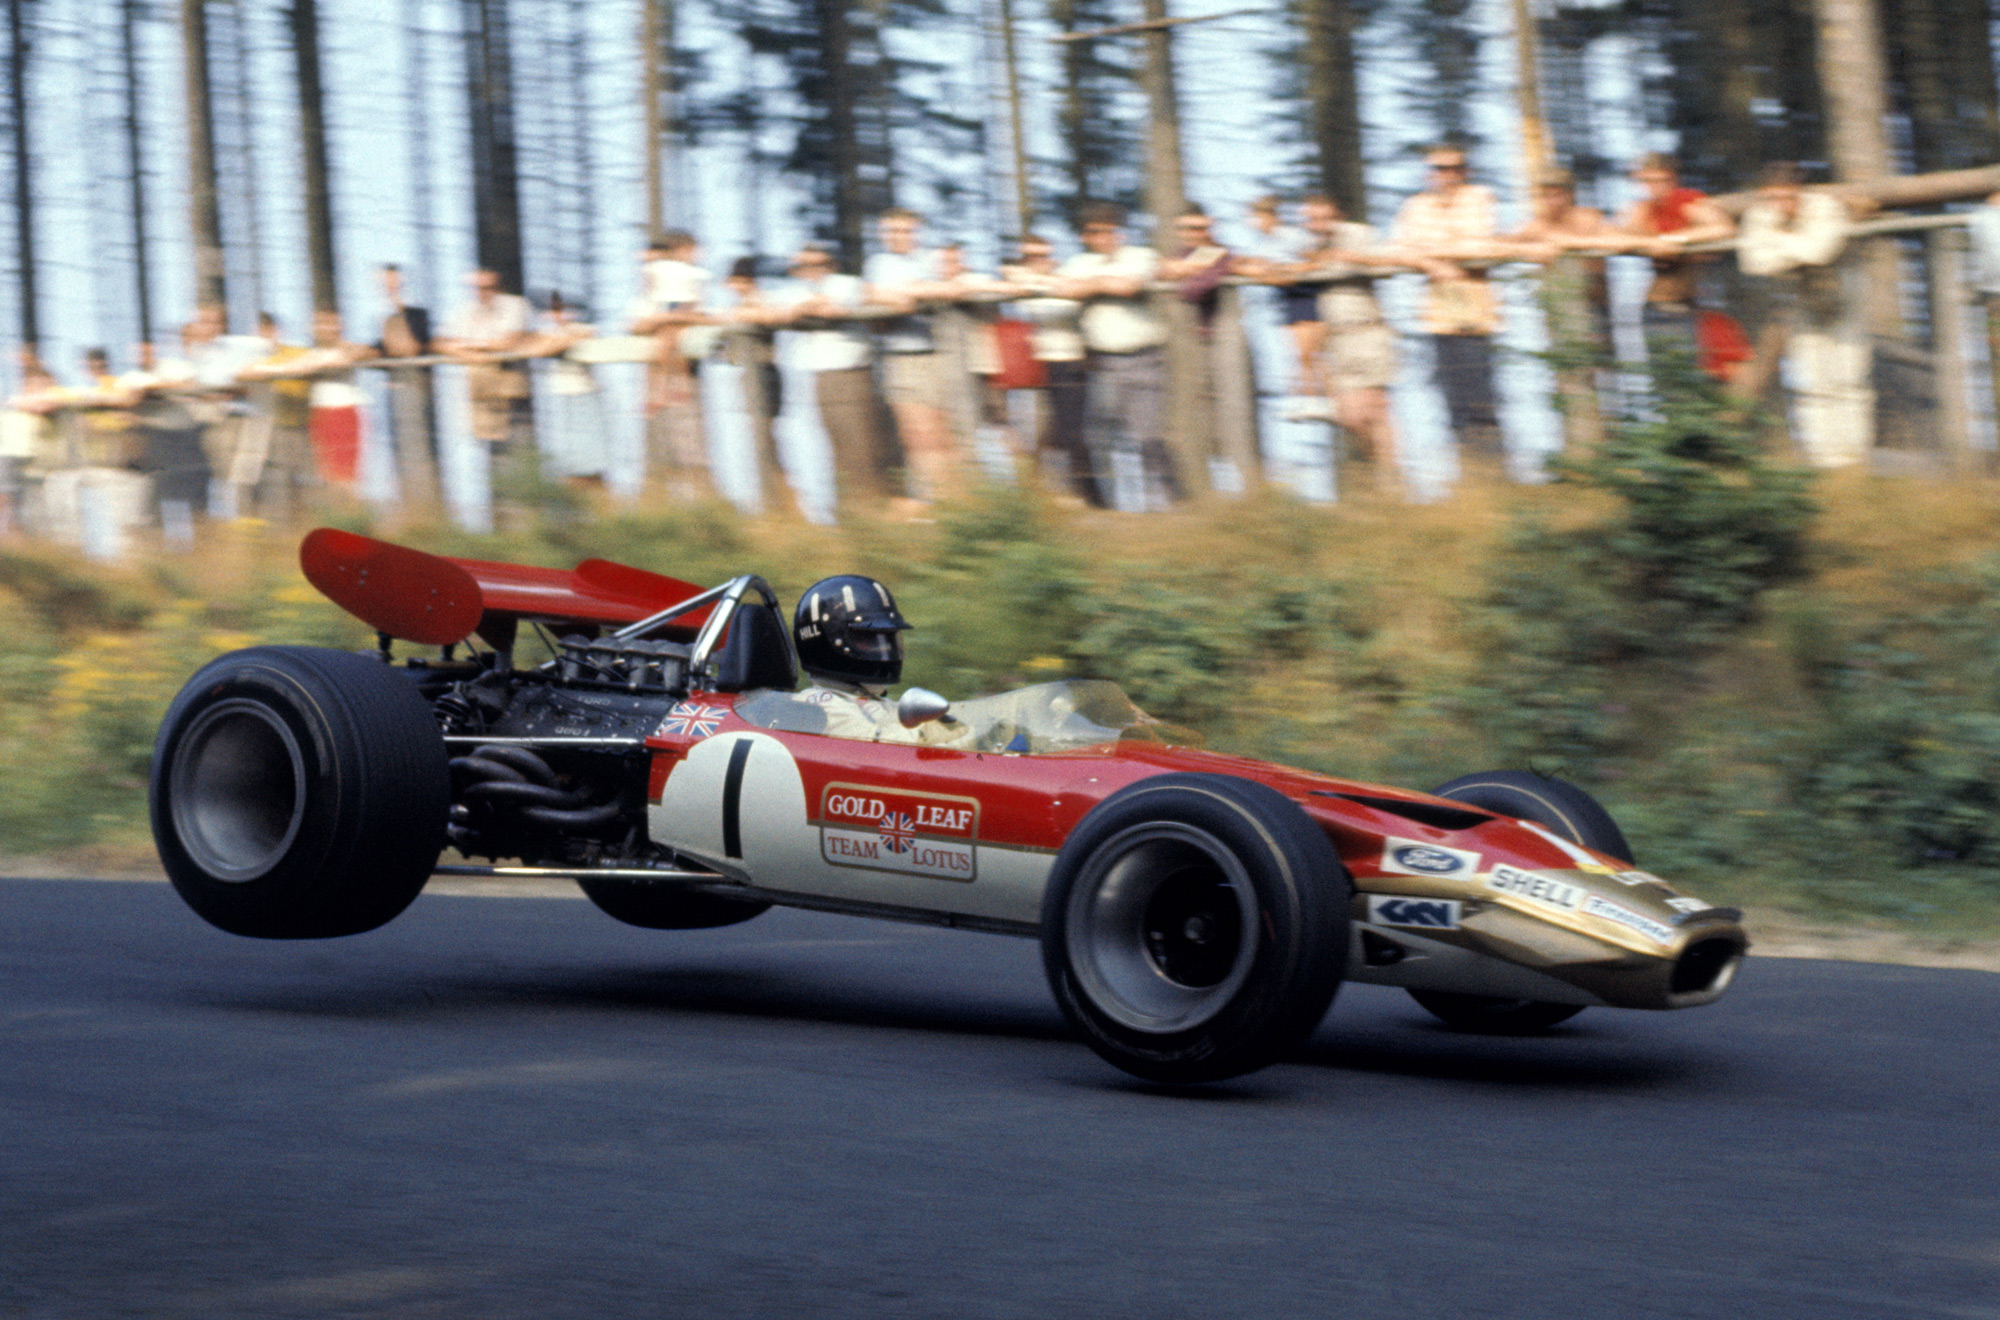 The 50 Best Looking Formula One Cars: No. 45 - No. 41